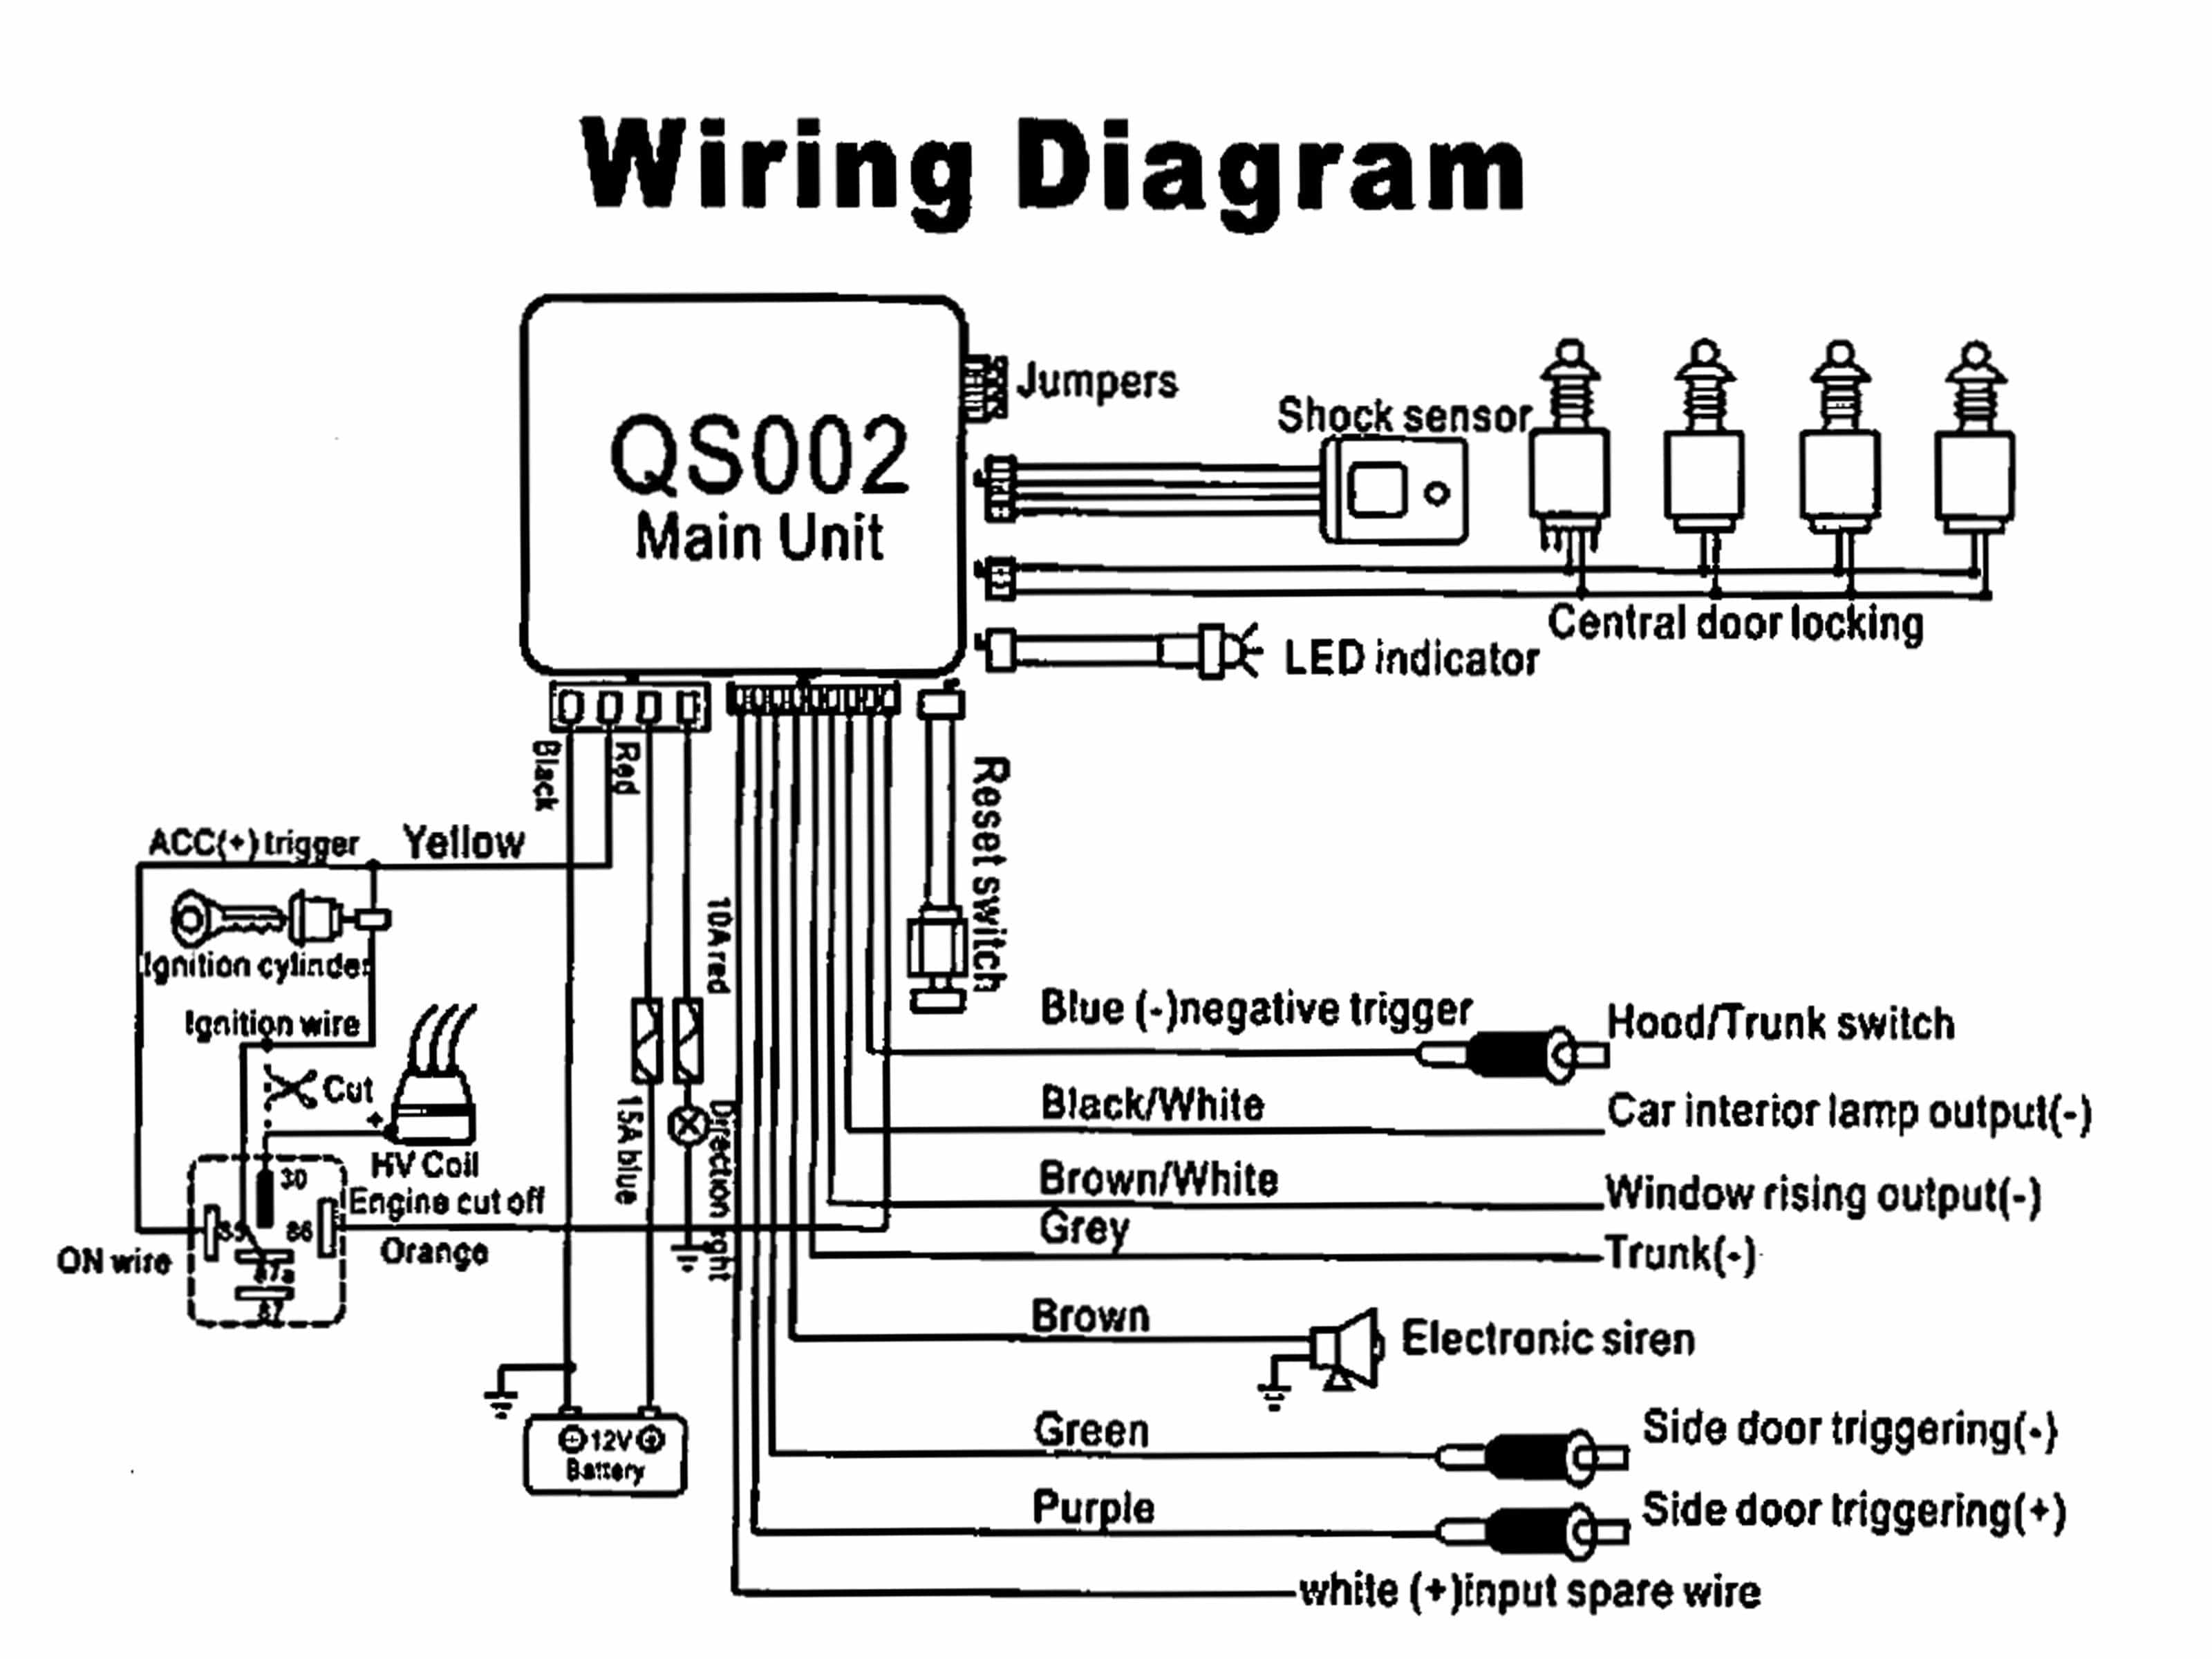 AlarmInstructions_7a98a2bc d189 4c5b 99b3 c774abdbef28 clarion cmd5 wiring diagram wiring diagram shrutiradio  at readyjetset.co